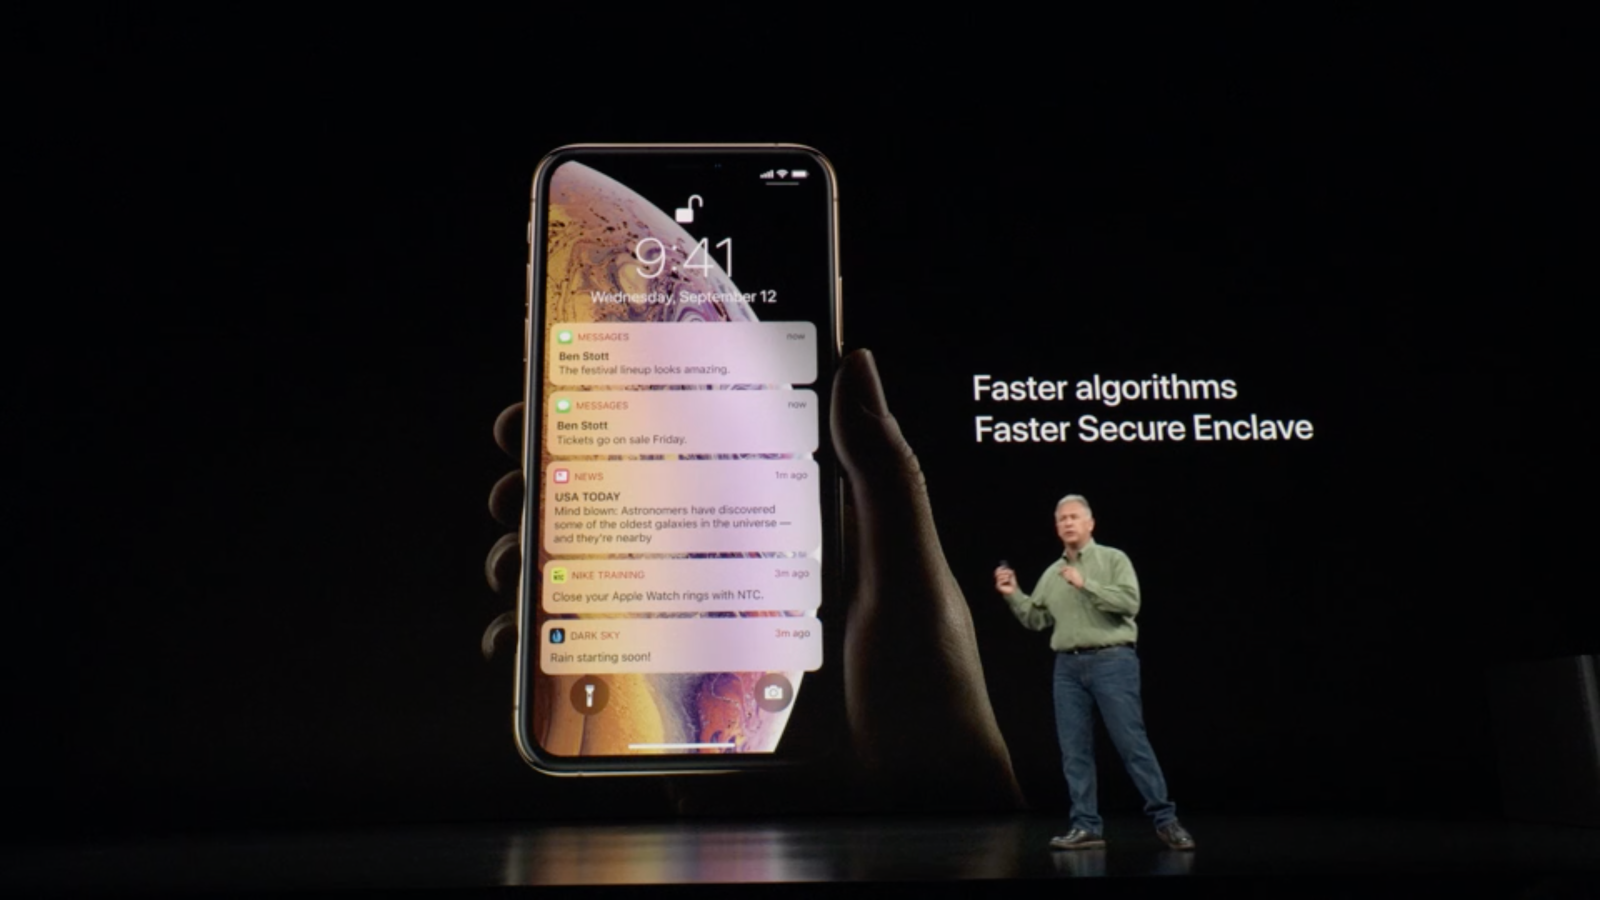 iPhone Xs & iPhone Xs Max feature faster Face ID performance, Apple claims